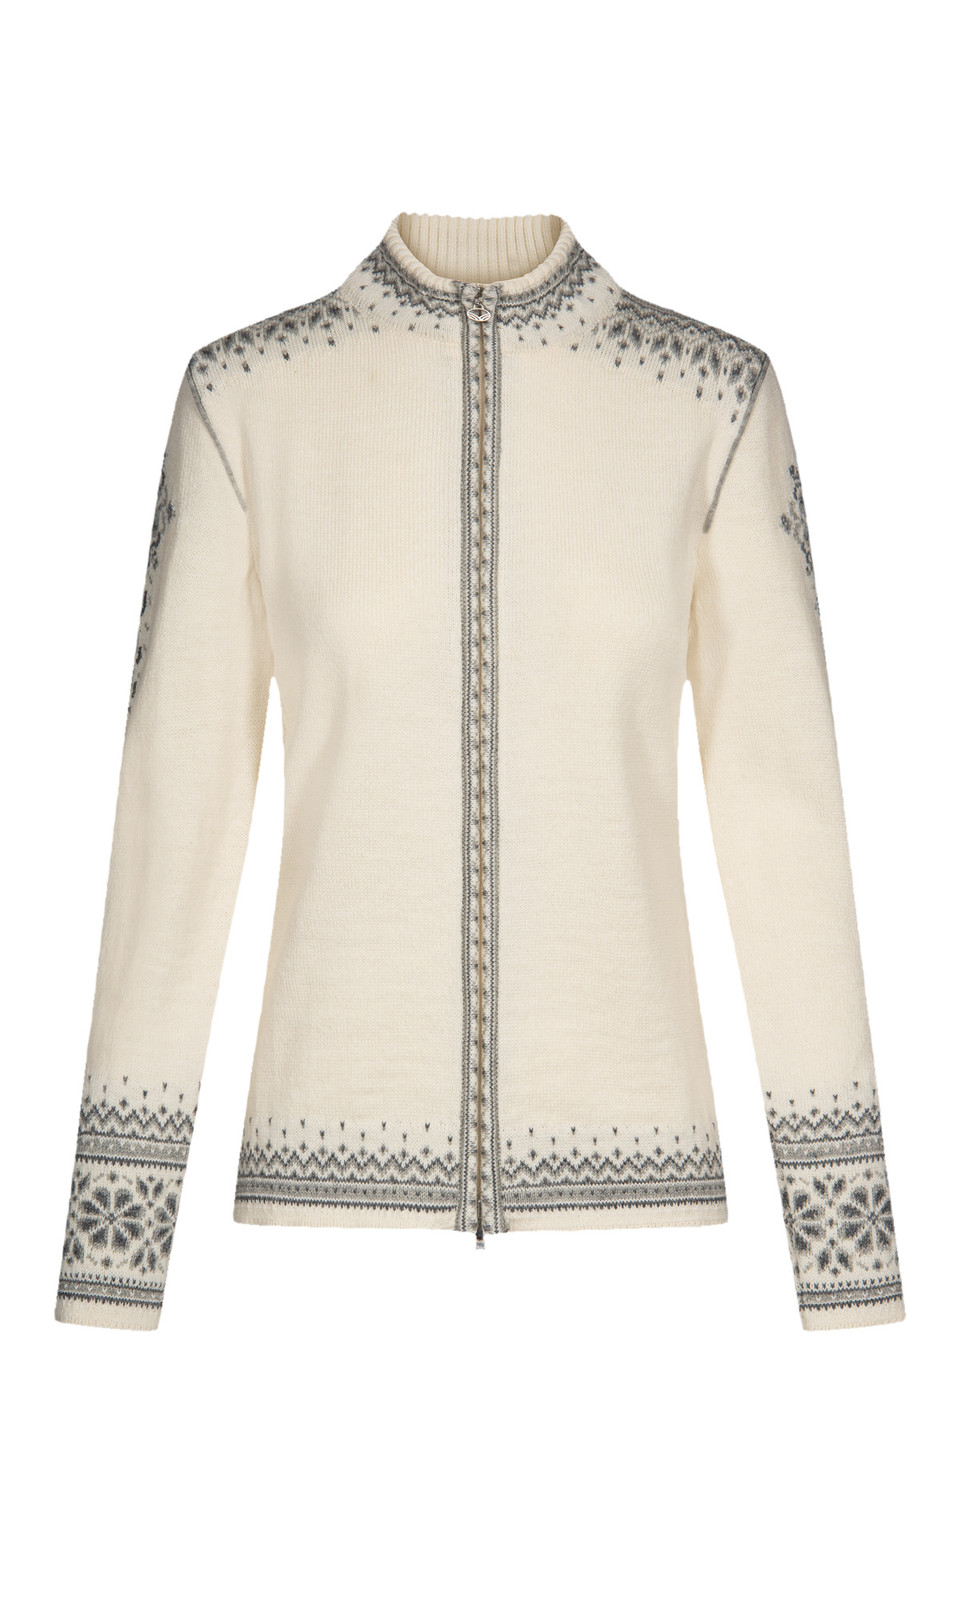 Dale of Norway 140th Anniversary Cardigan, Ladies - Off White/Smoke/Light Charcoal, 83481-A (83481-A)